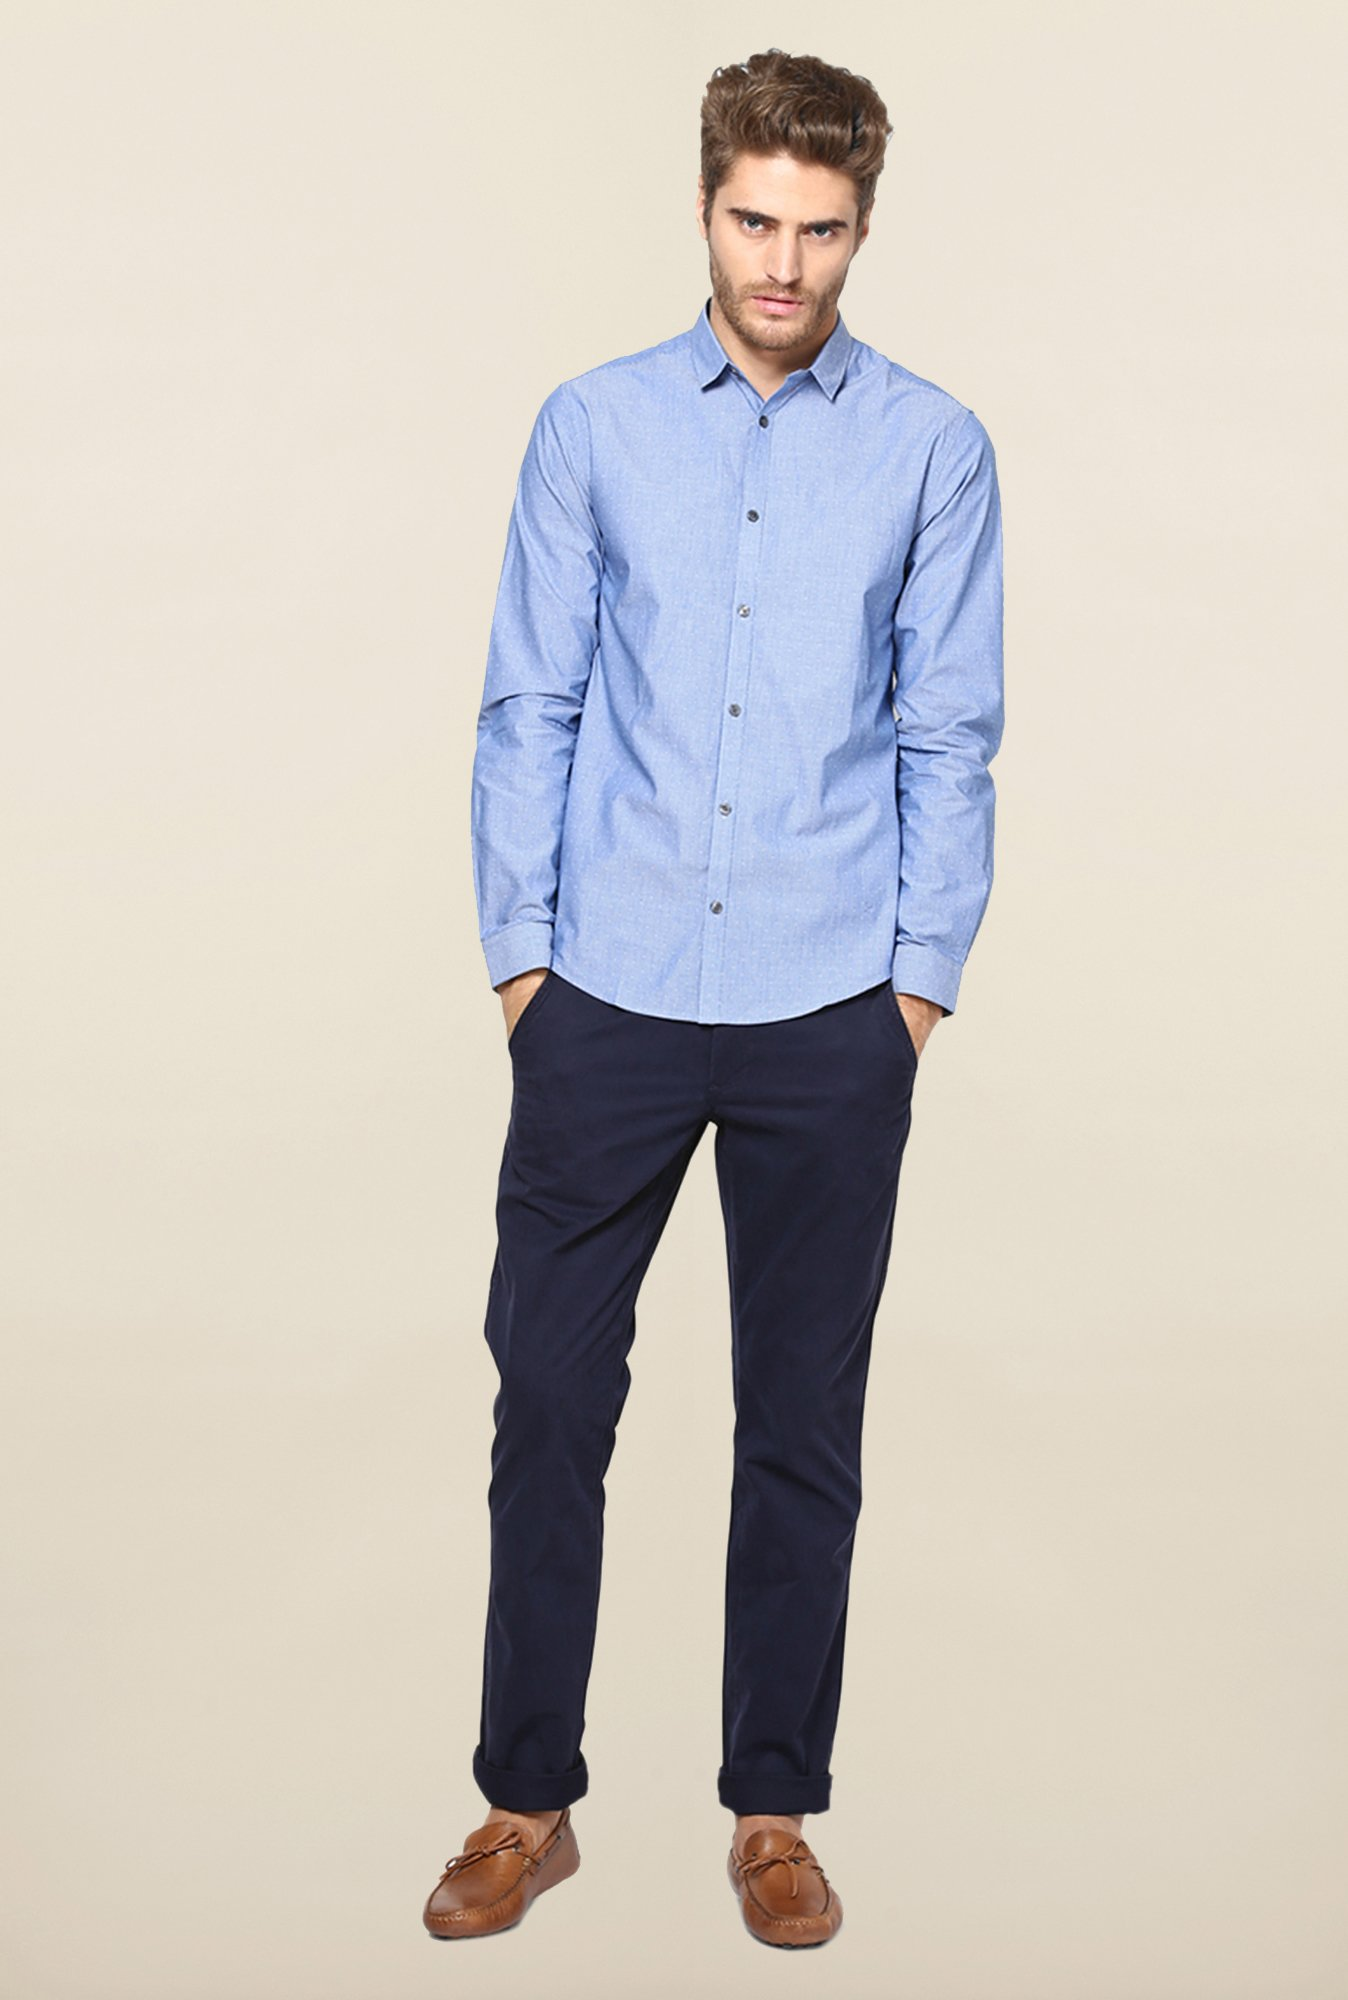 Jack & Jones Blue Pin Stripes Casual Shirt